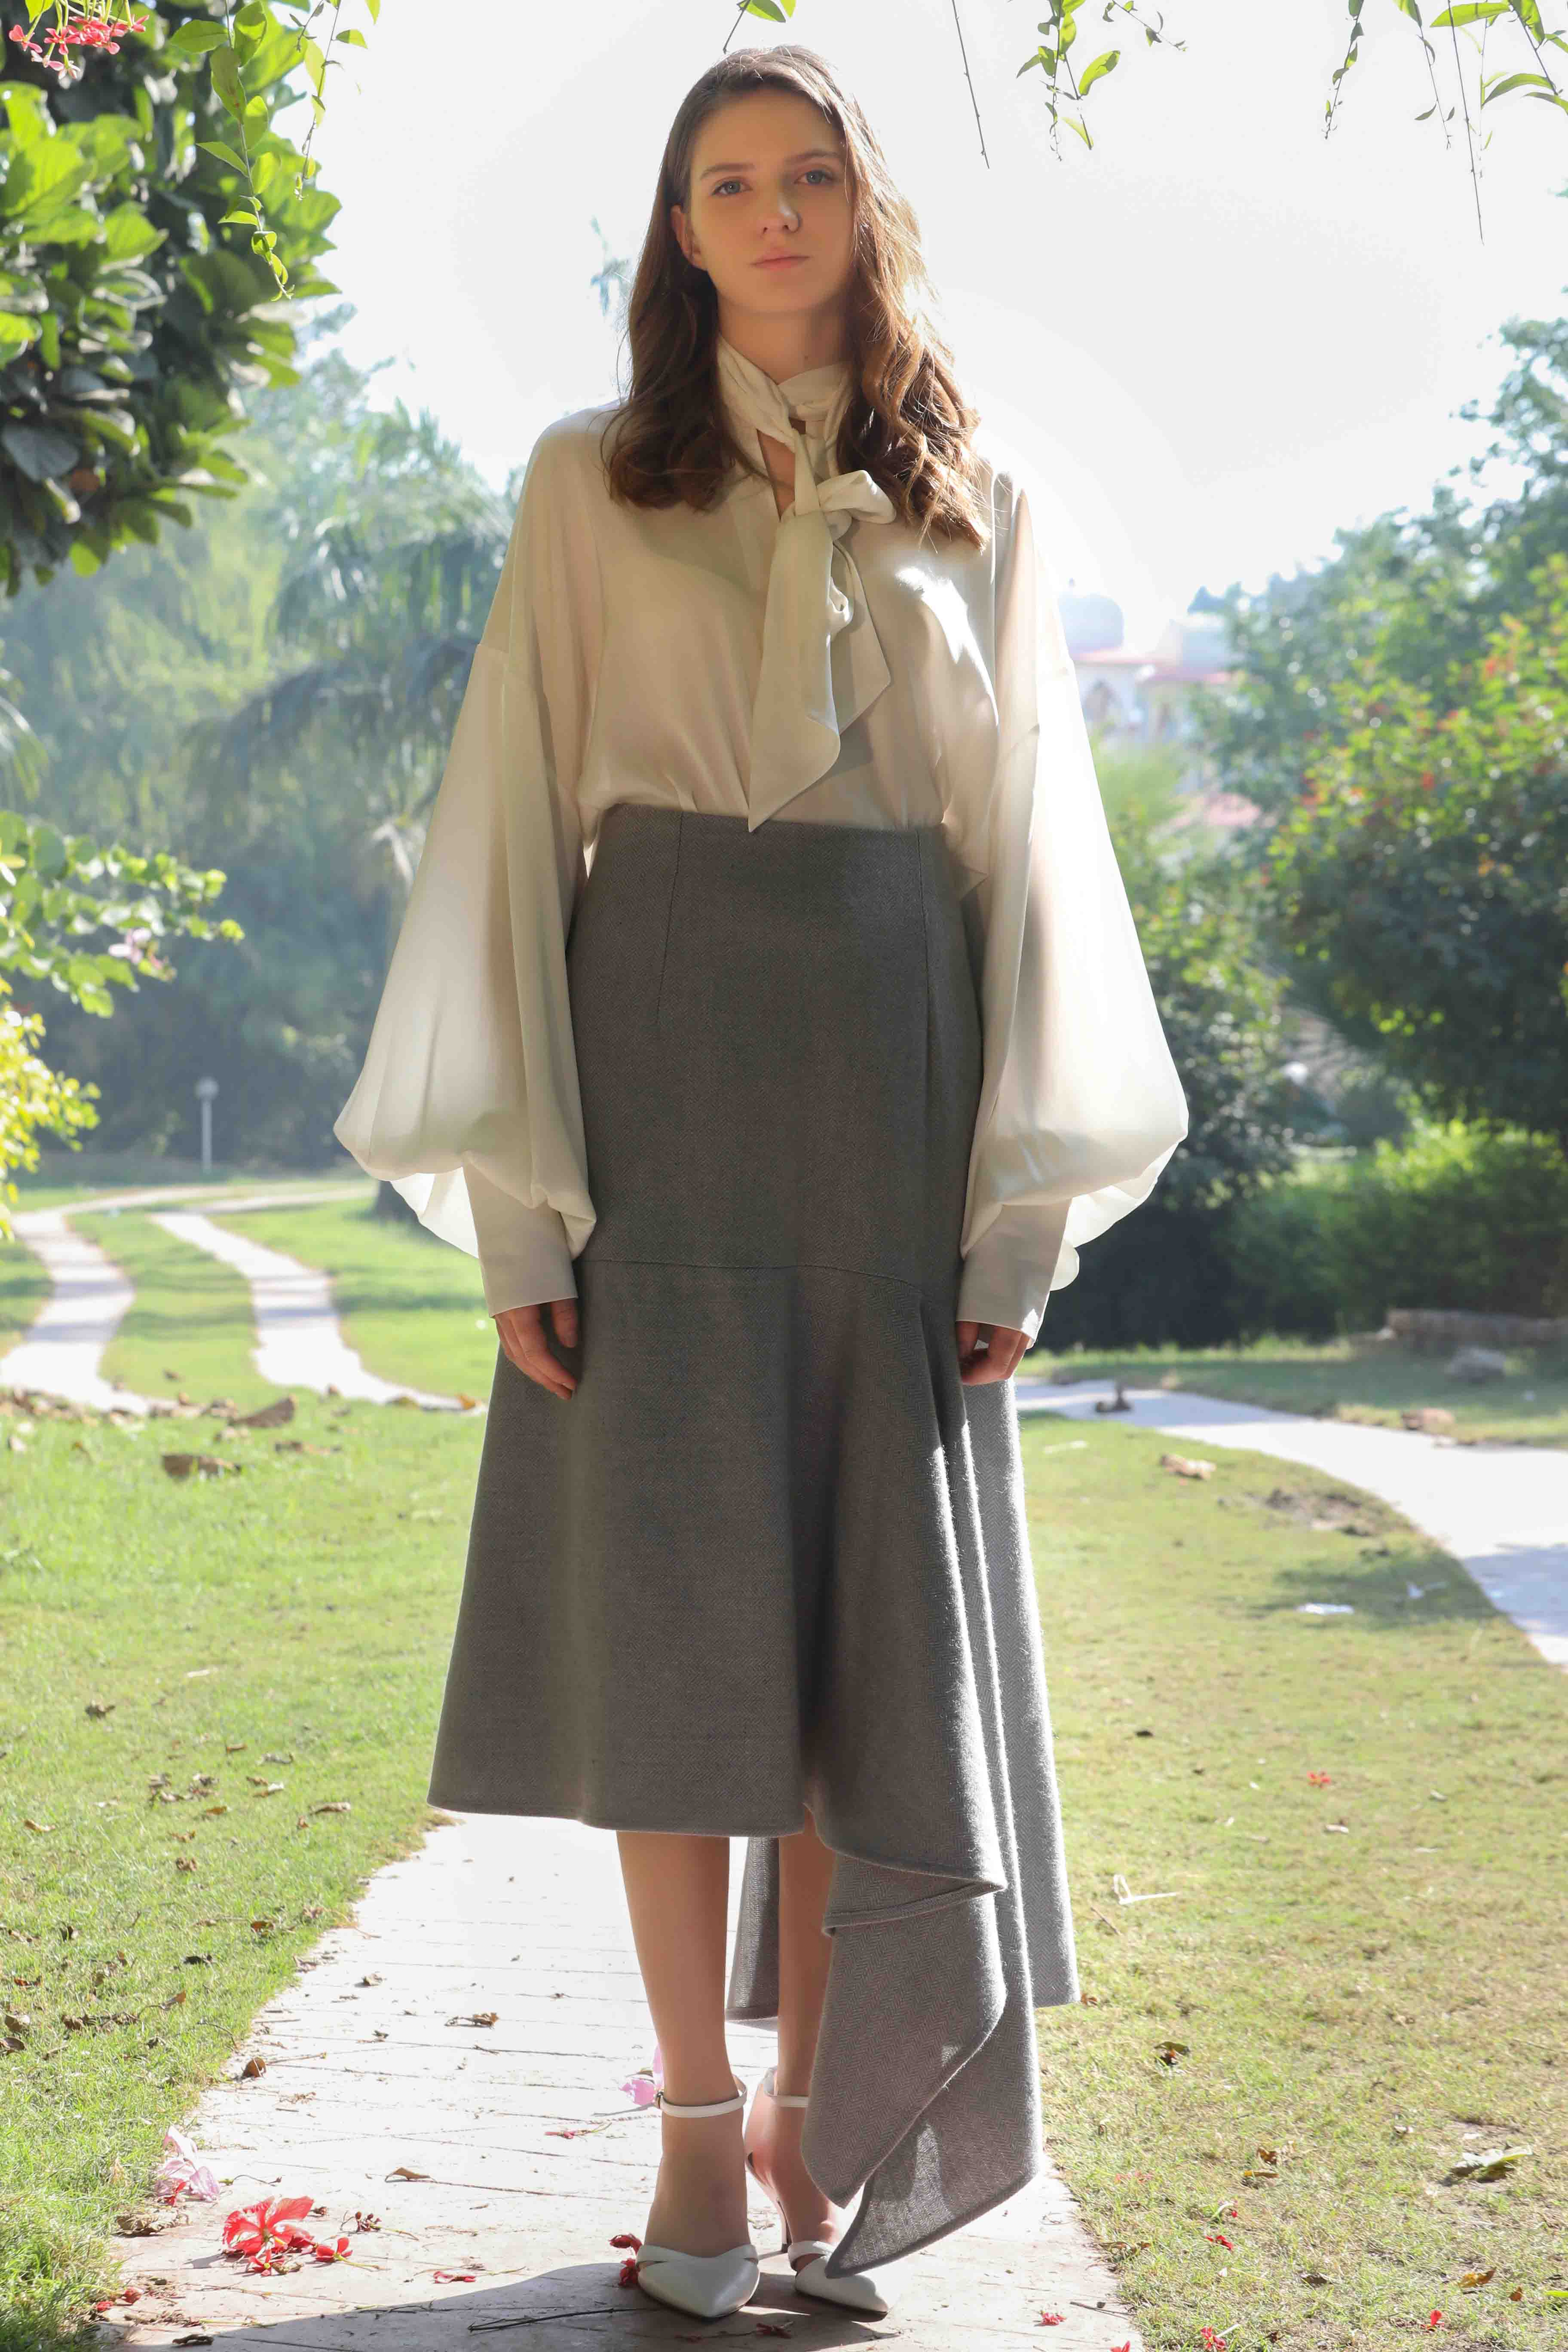 Label Meadow's, Dusty blue asymmetric skirt